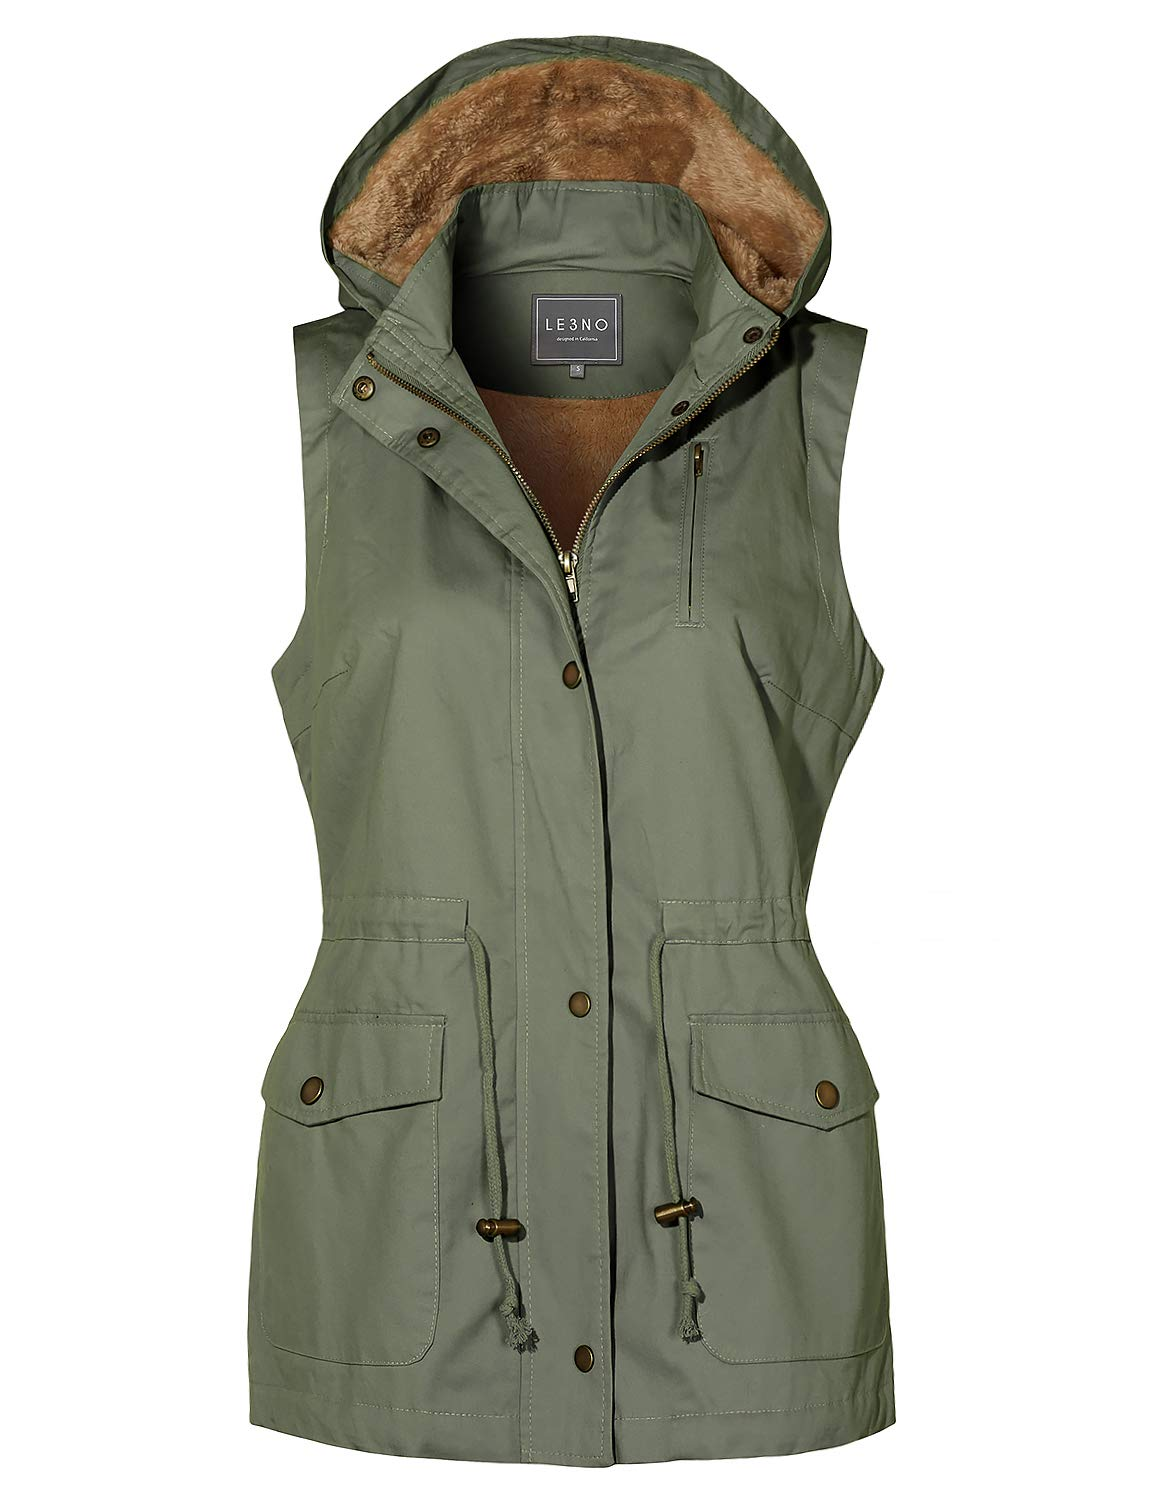 LE3NO Womens Faux Fur Drawstring Waist Military Anorak Vest with Removable Hoodie, Olive, Small by LE3NO